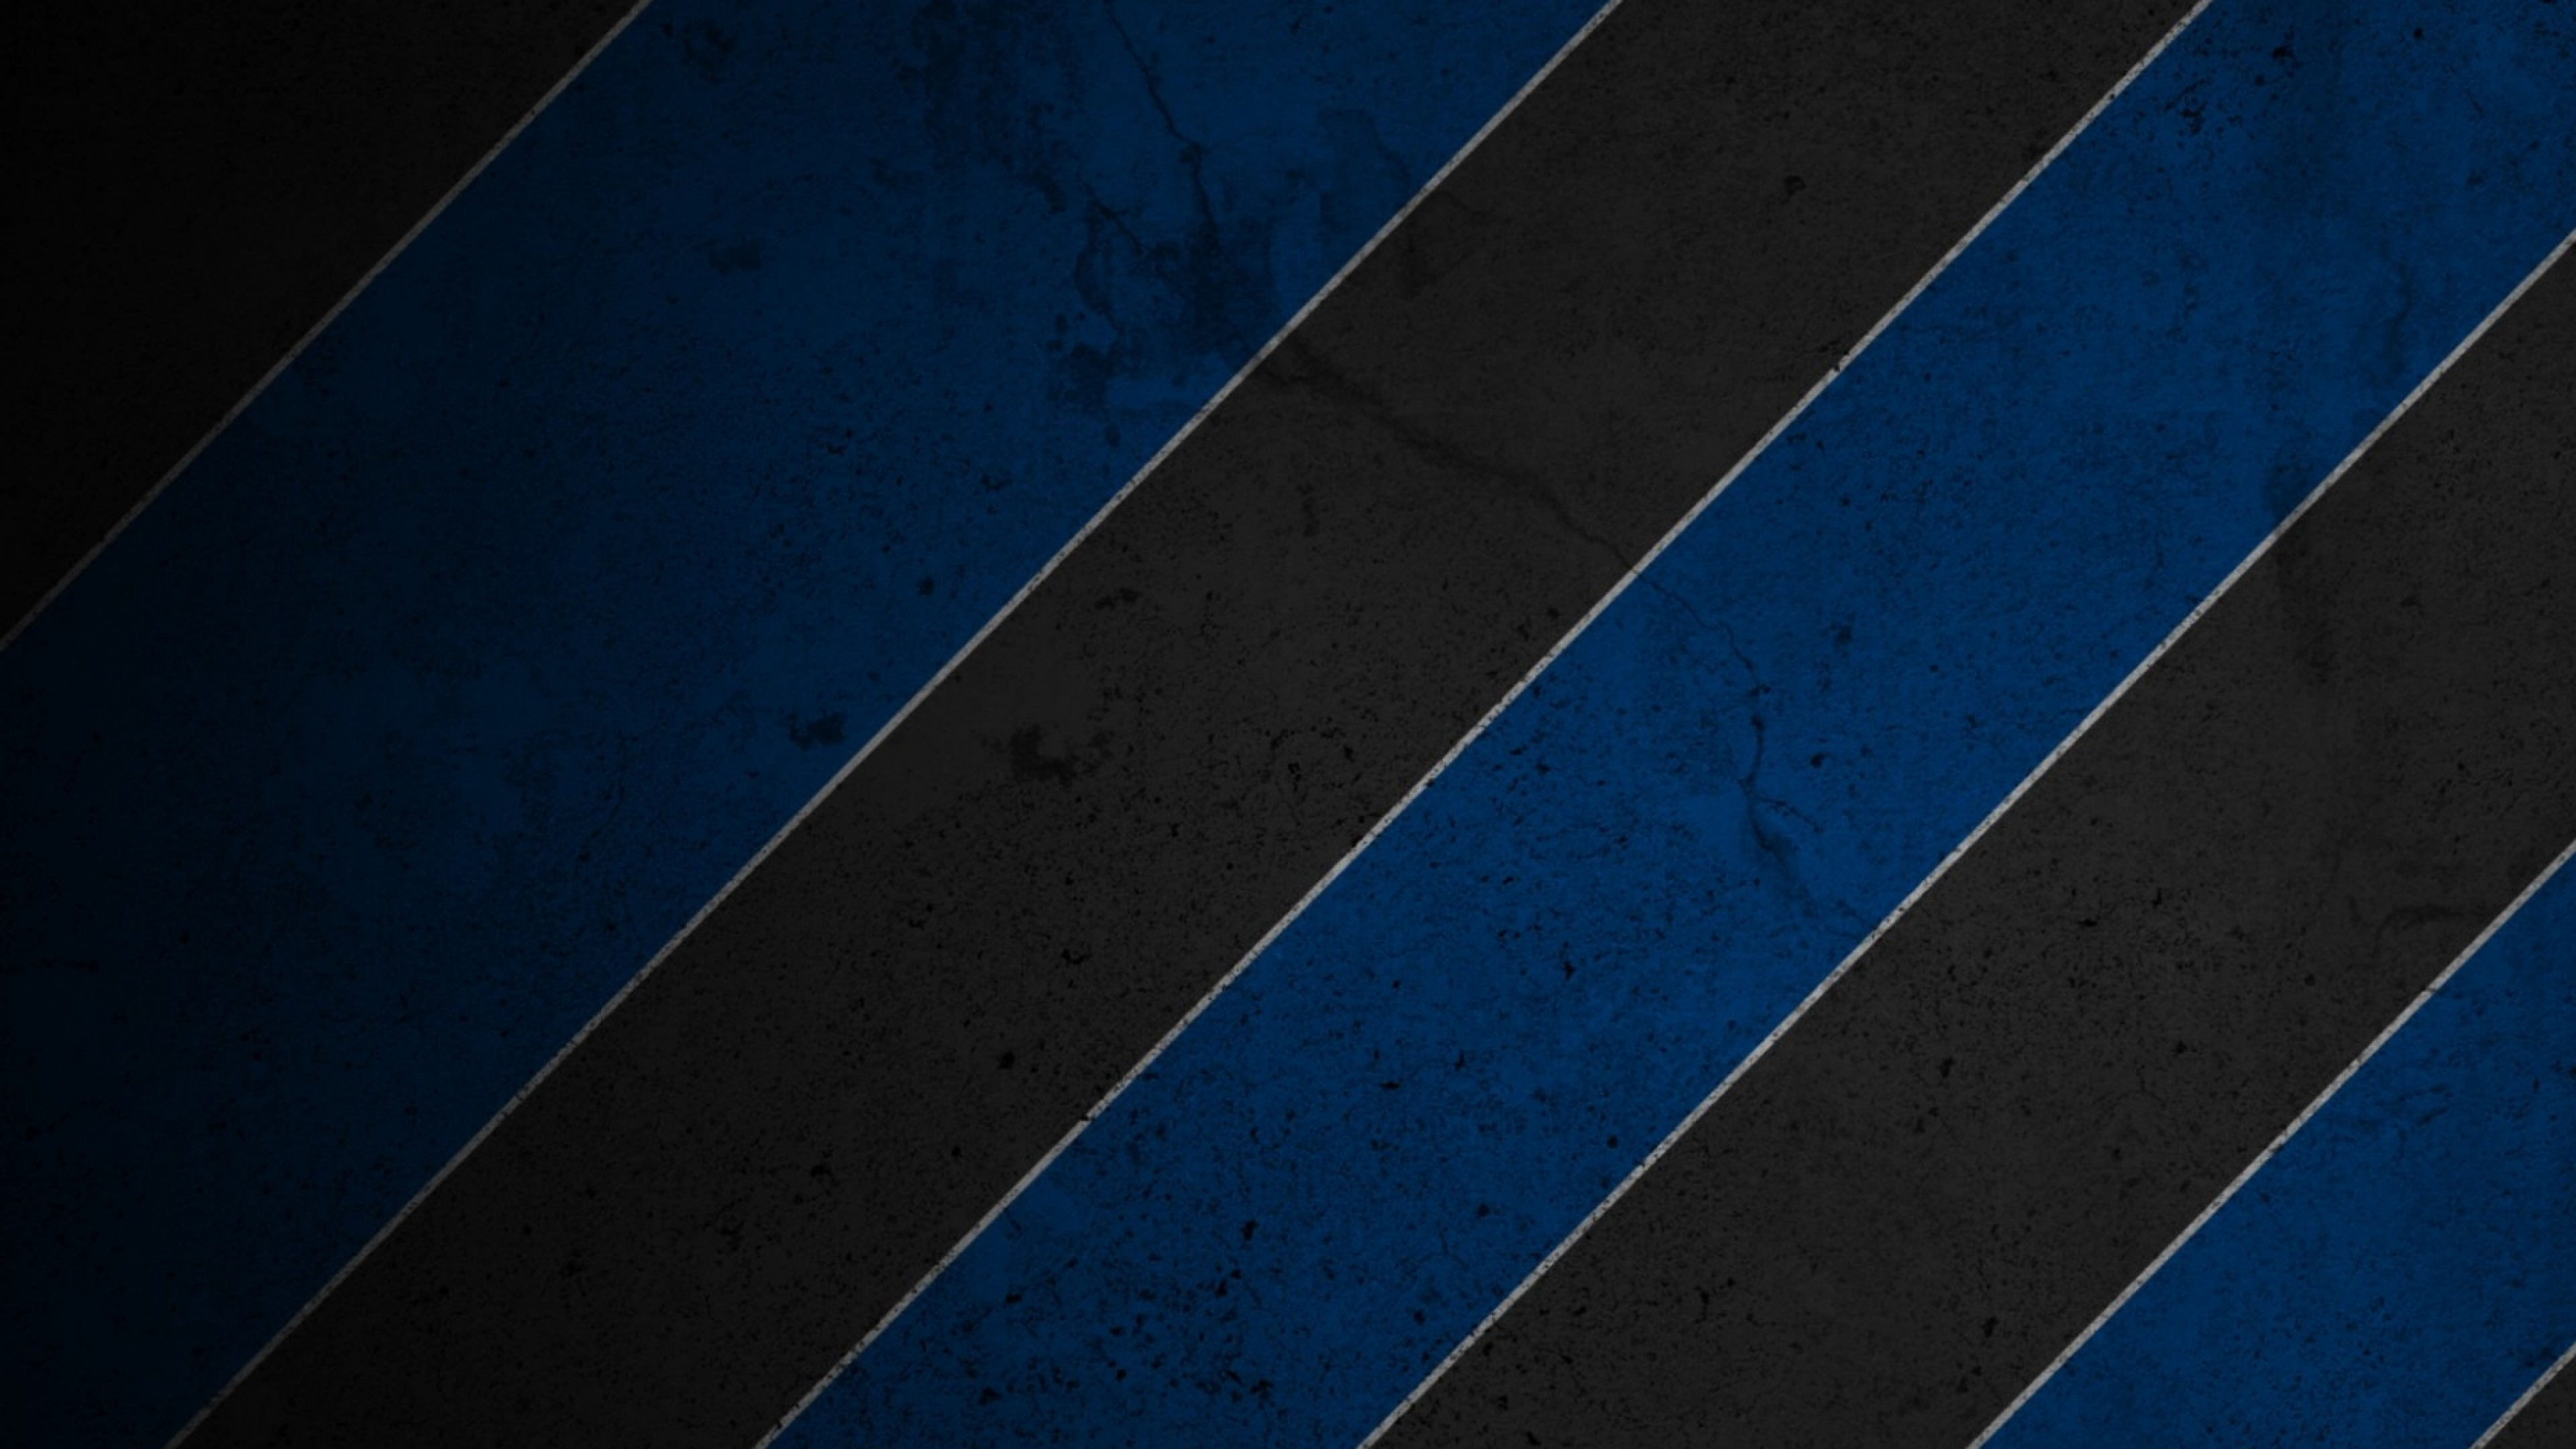 3840x2160  Wallpaper stripes, blue, black, white